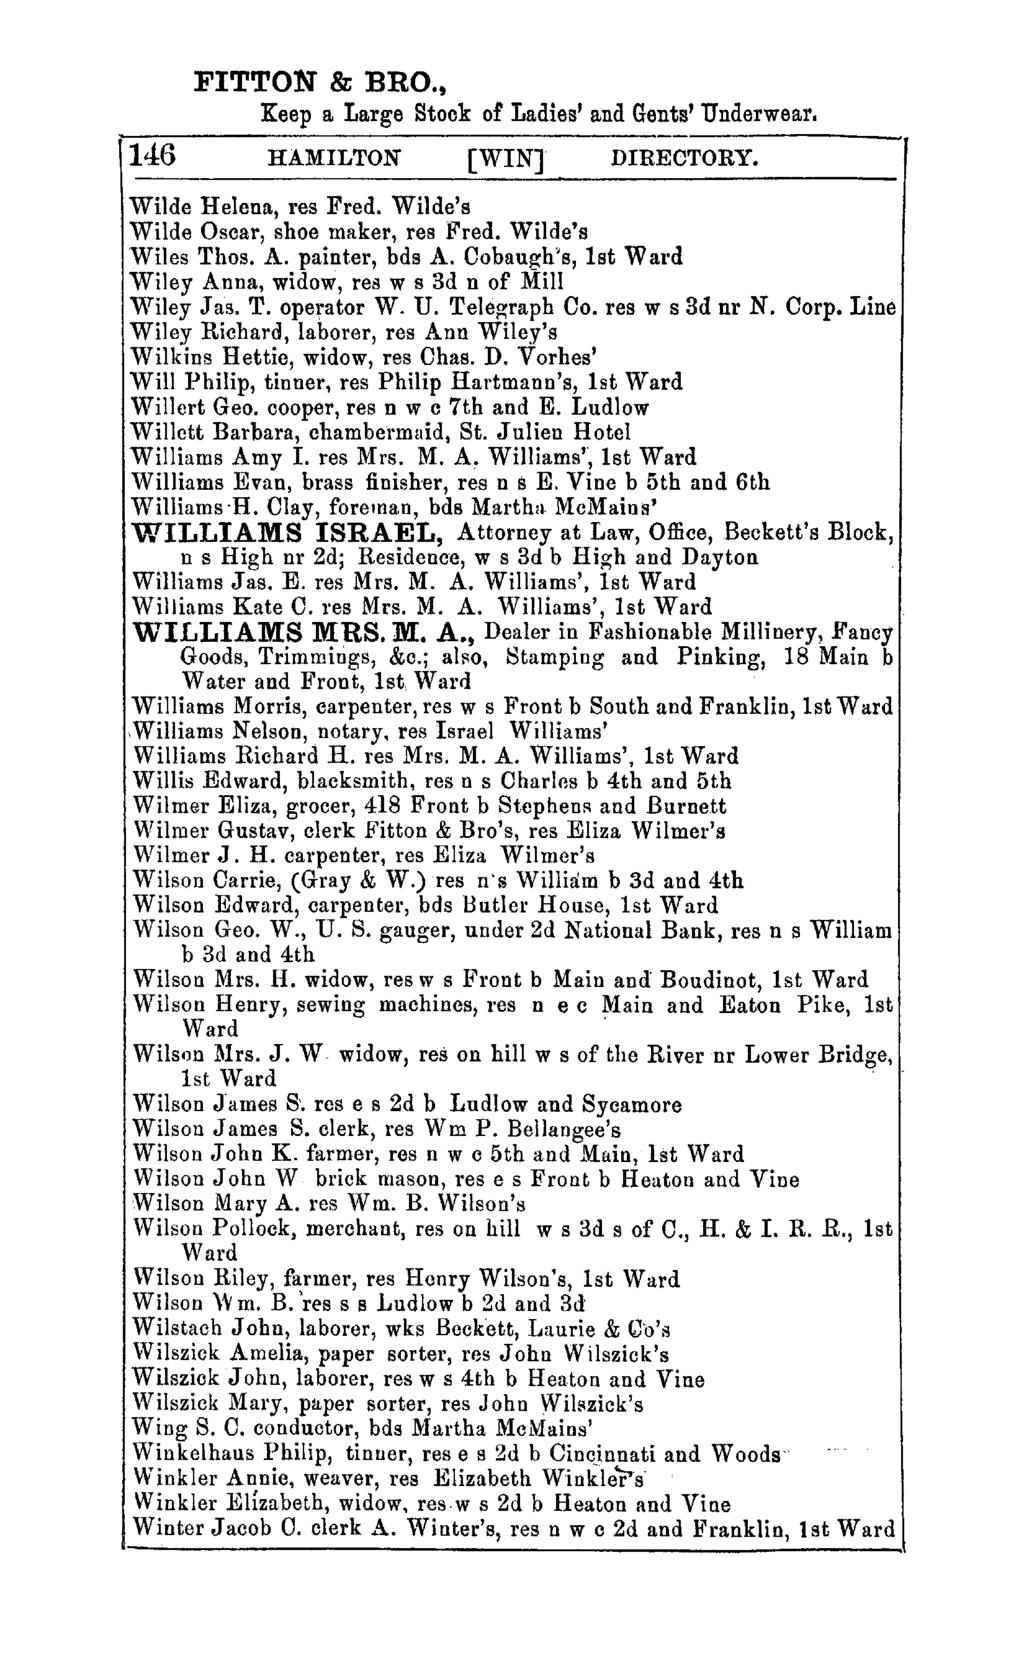 FITTON & BRO., Keep a Large Stock ot Ladies' and Gents' Underwear. 146 HAMILTON [WIN] DIRECTORY. Wilde Helena, res Fred. Wilde's Wilde Oscar, shoe maker, res Fred. Wilde's Wiles Thos. A.